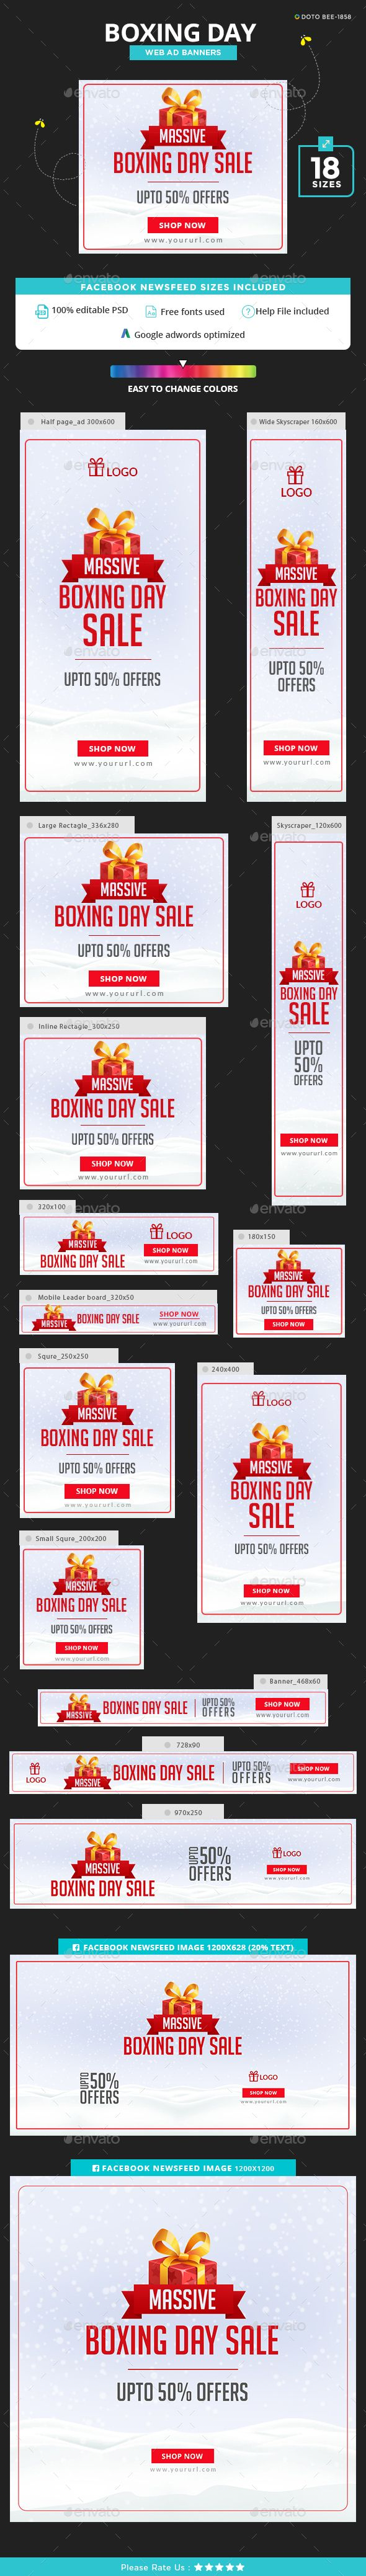 Boxing Day Sale Banners - Banners & Ads Web Elements Download here : https://graphicriver.net/item/boxing-day-sale-banners/19198028?s_rank=106&ref=Al-fatih